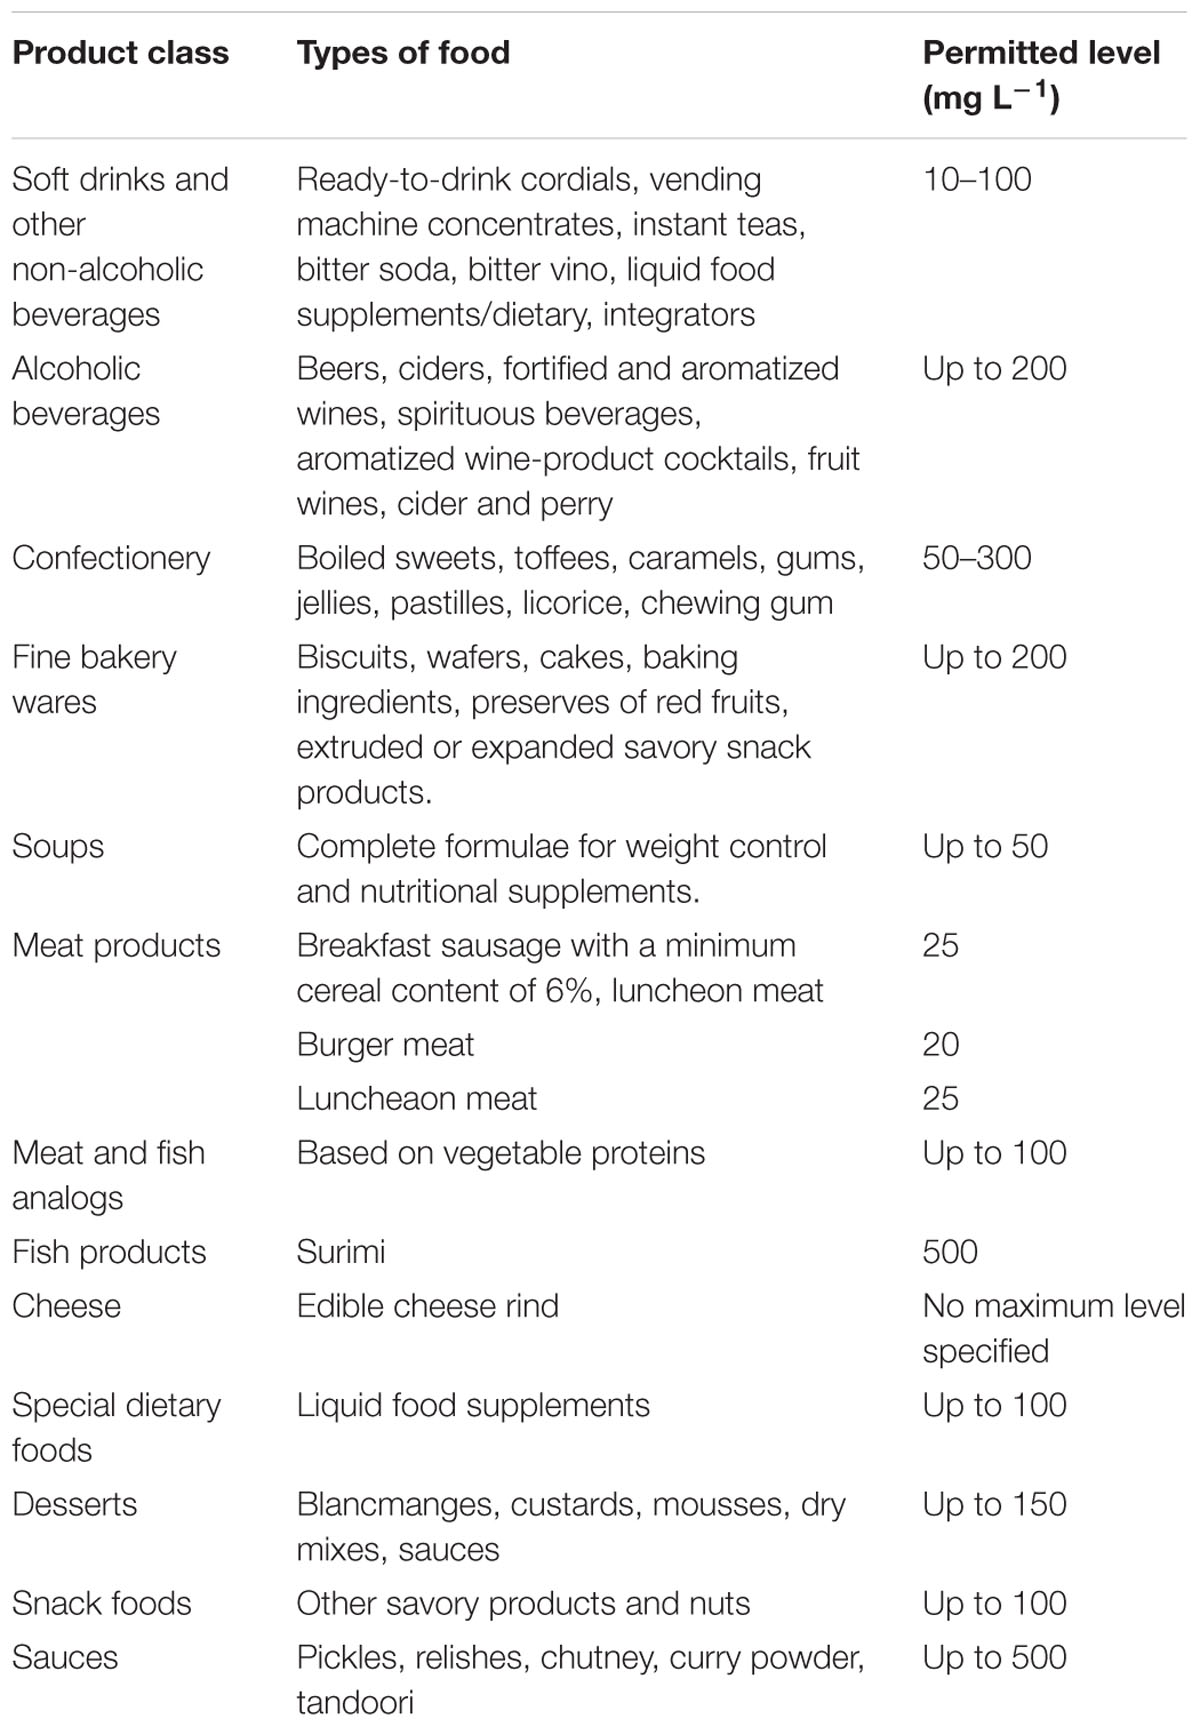 analysis of food dyes in beverages